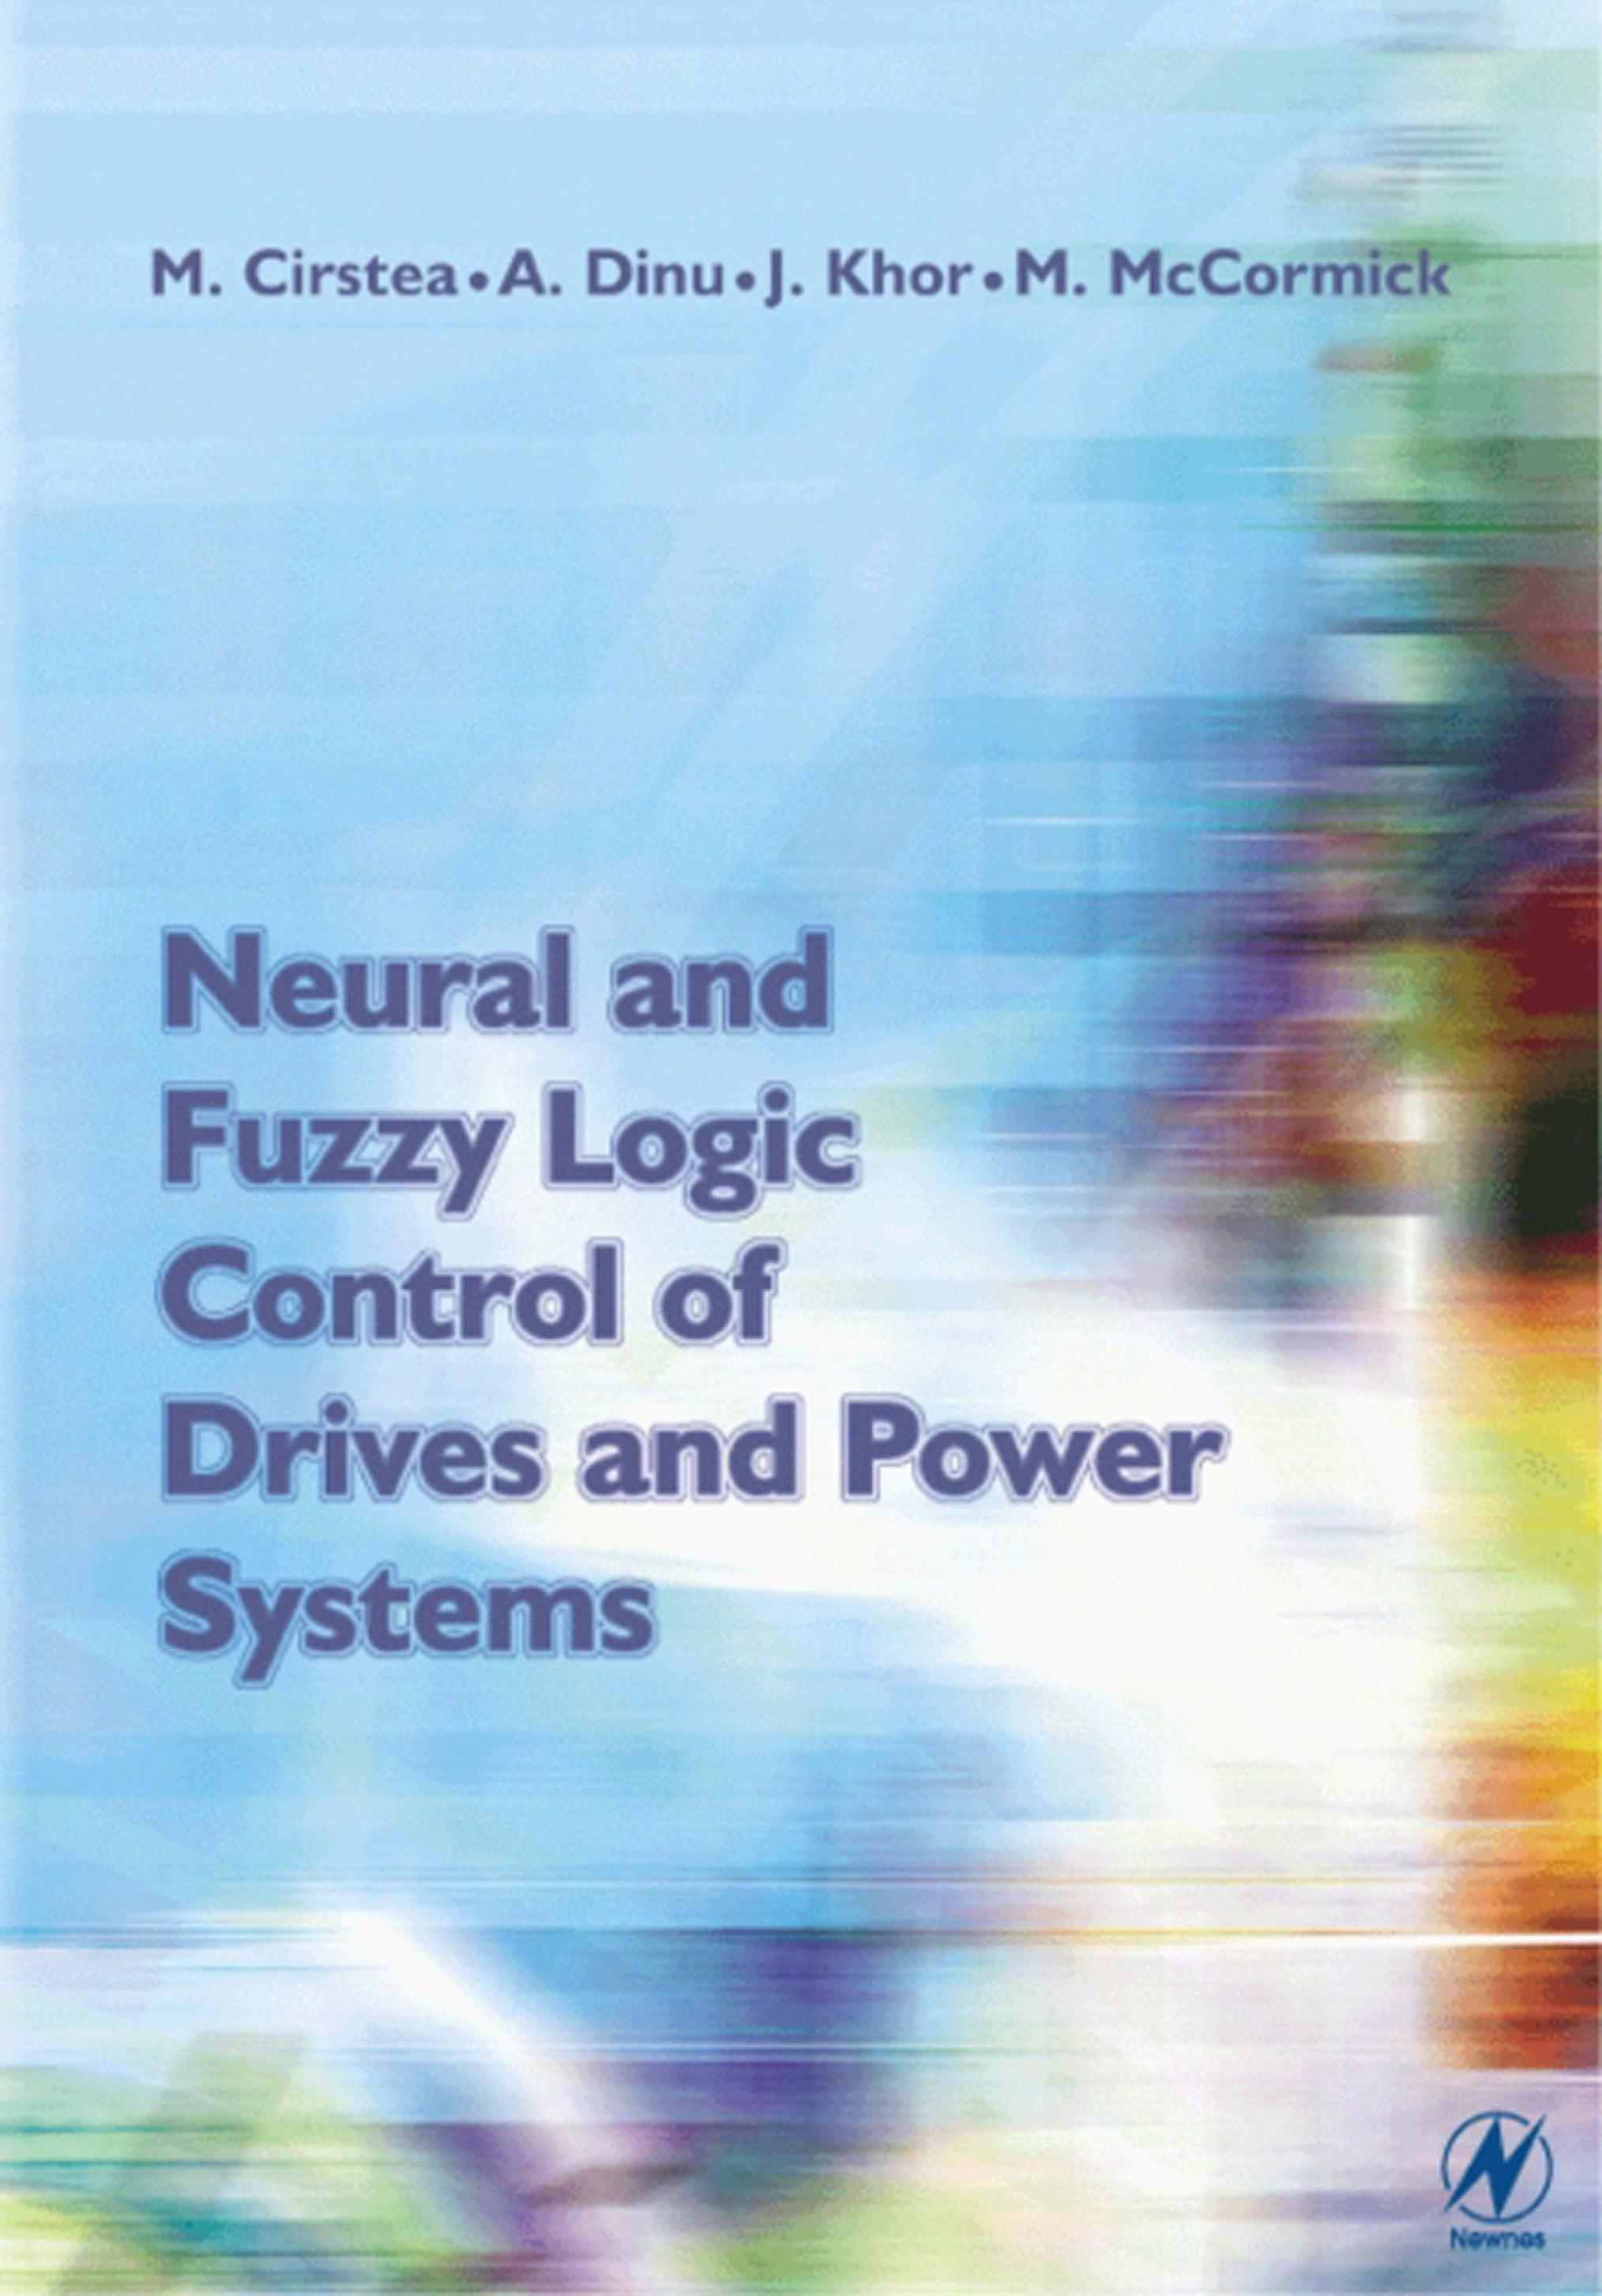 Neural and Fuzzy Logic Control of Drives and Power Systems EB9780080497365